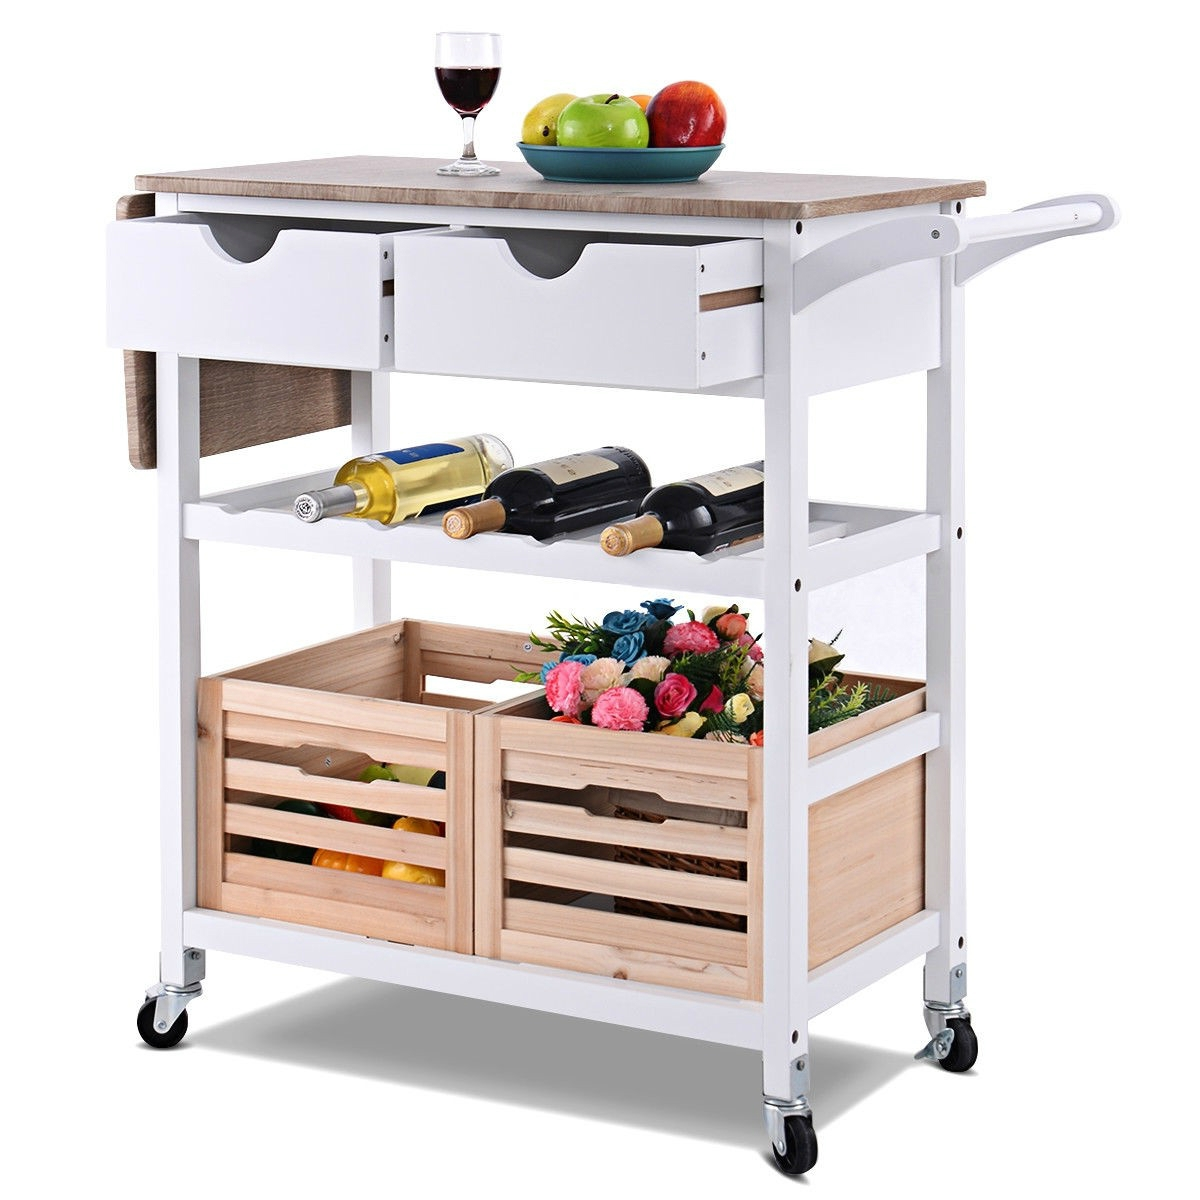 Astounding White Wood Kitchen Island Cart With Wine Rack And Wheels Short Links Chair Design For Home Short Linksinfo